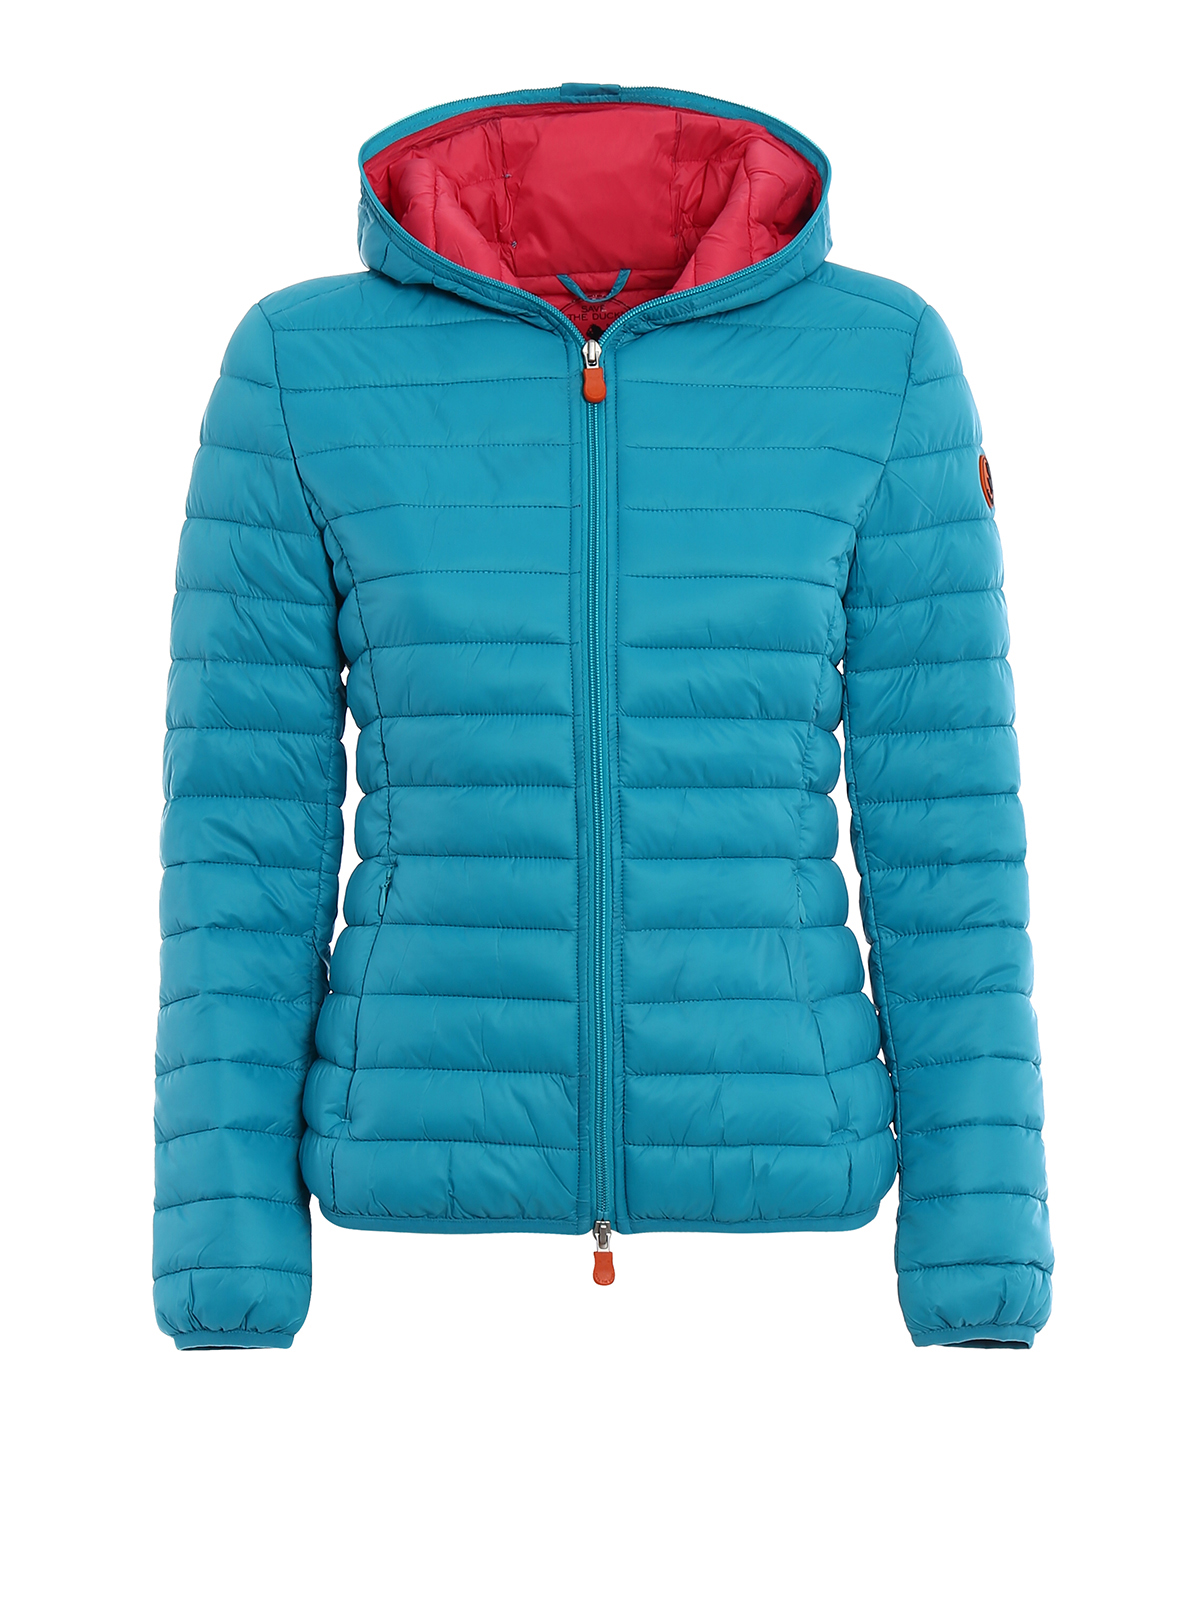 Save the Duck - Ultra light eco-friendly jacket - padded